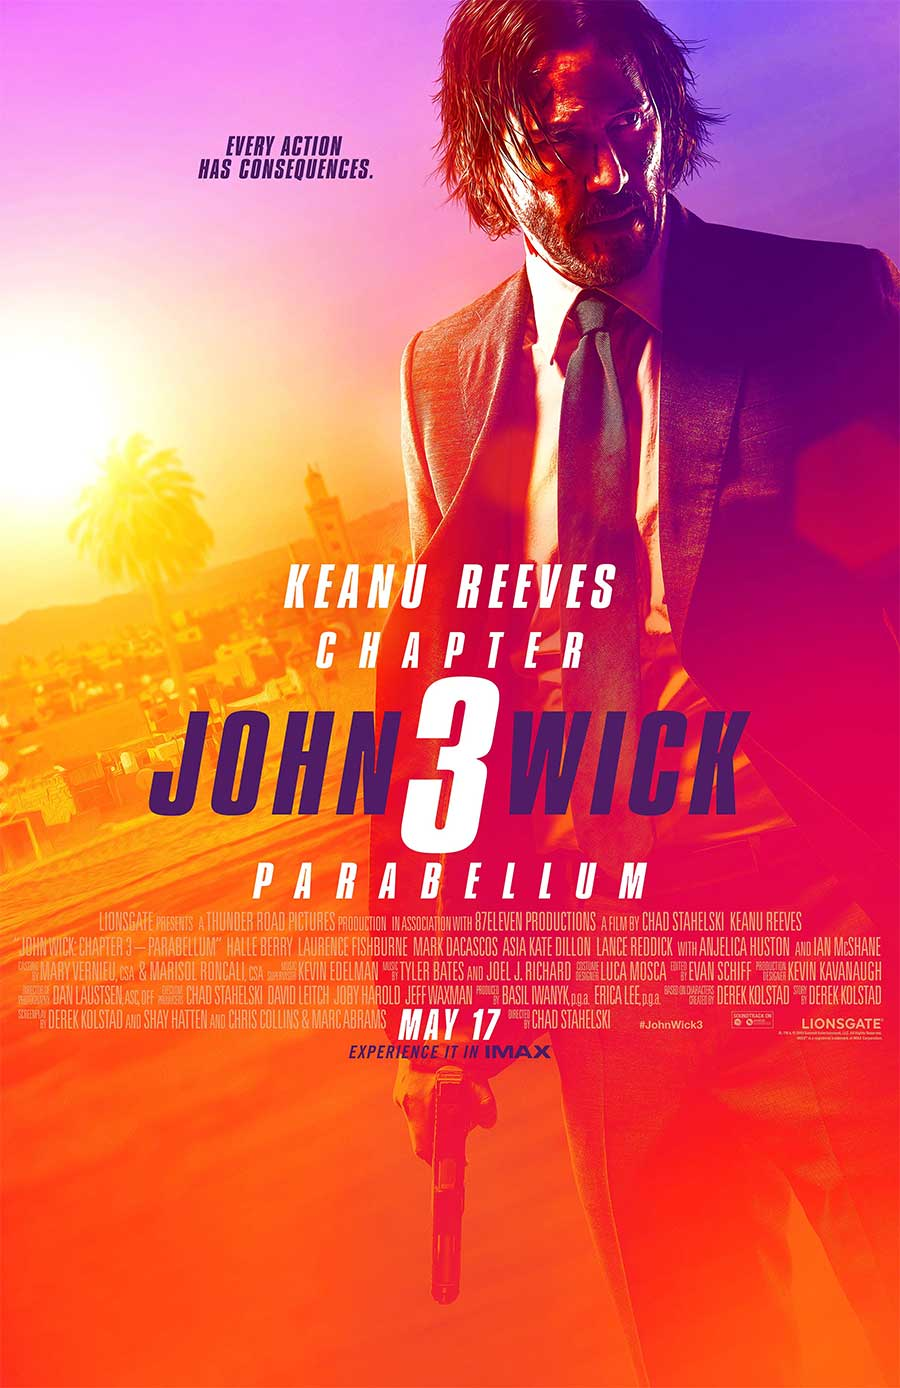 Poster for John Wick: Chapter 3 (LUX)